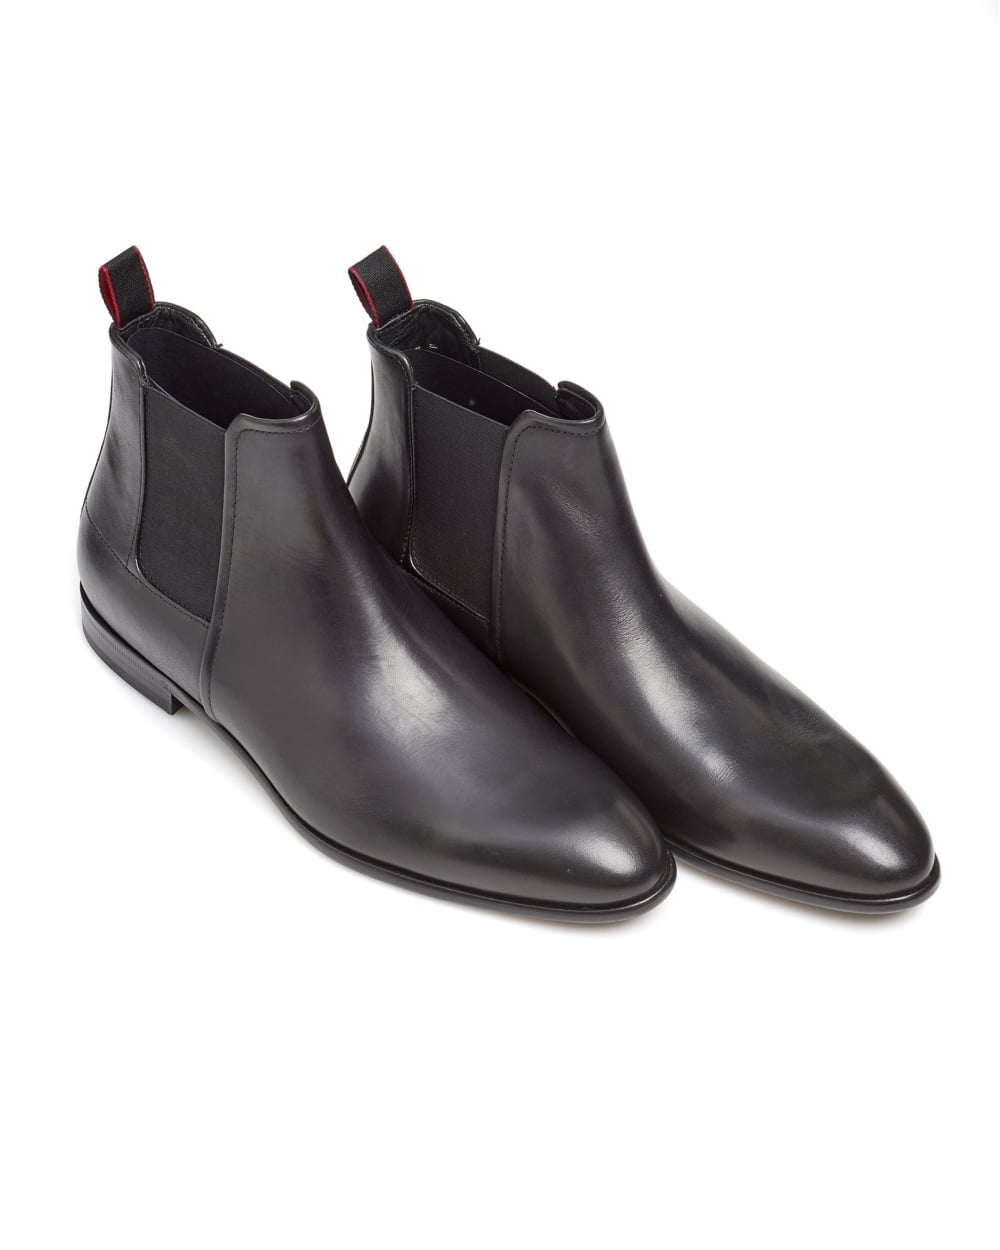 Professional For Sale Get New Formal Chelsea boots in rich leather HUGO BOSS Discount Purchase Low Cost Cheap Price ByhrSyQu